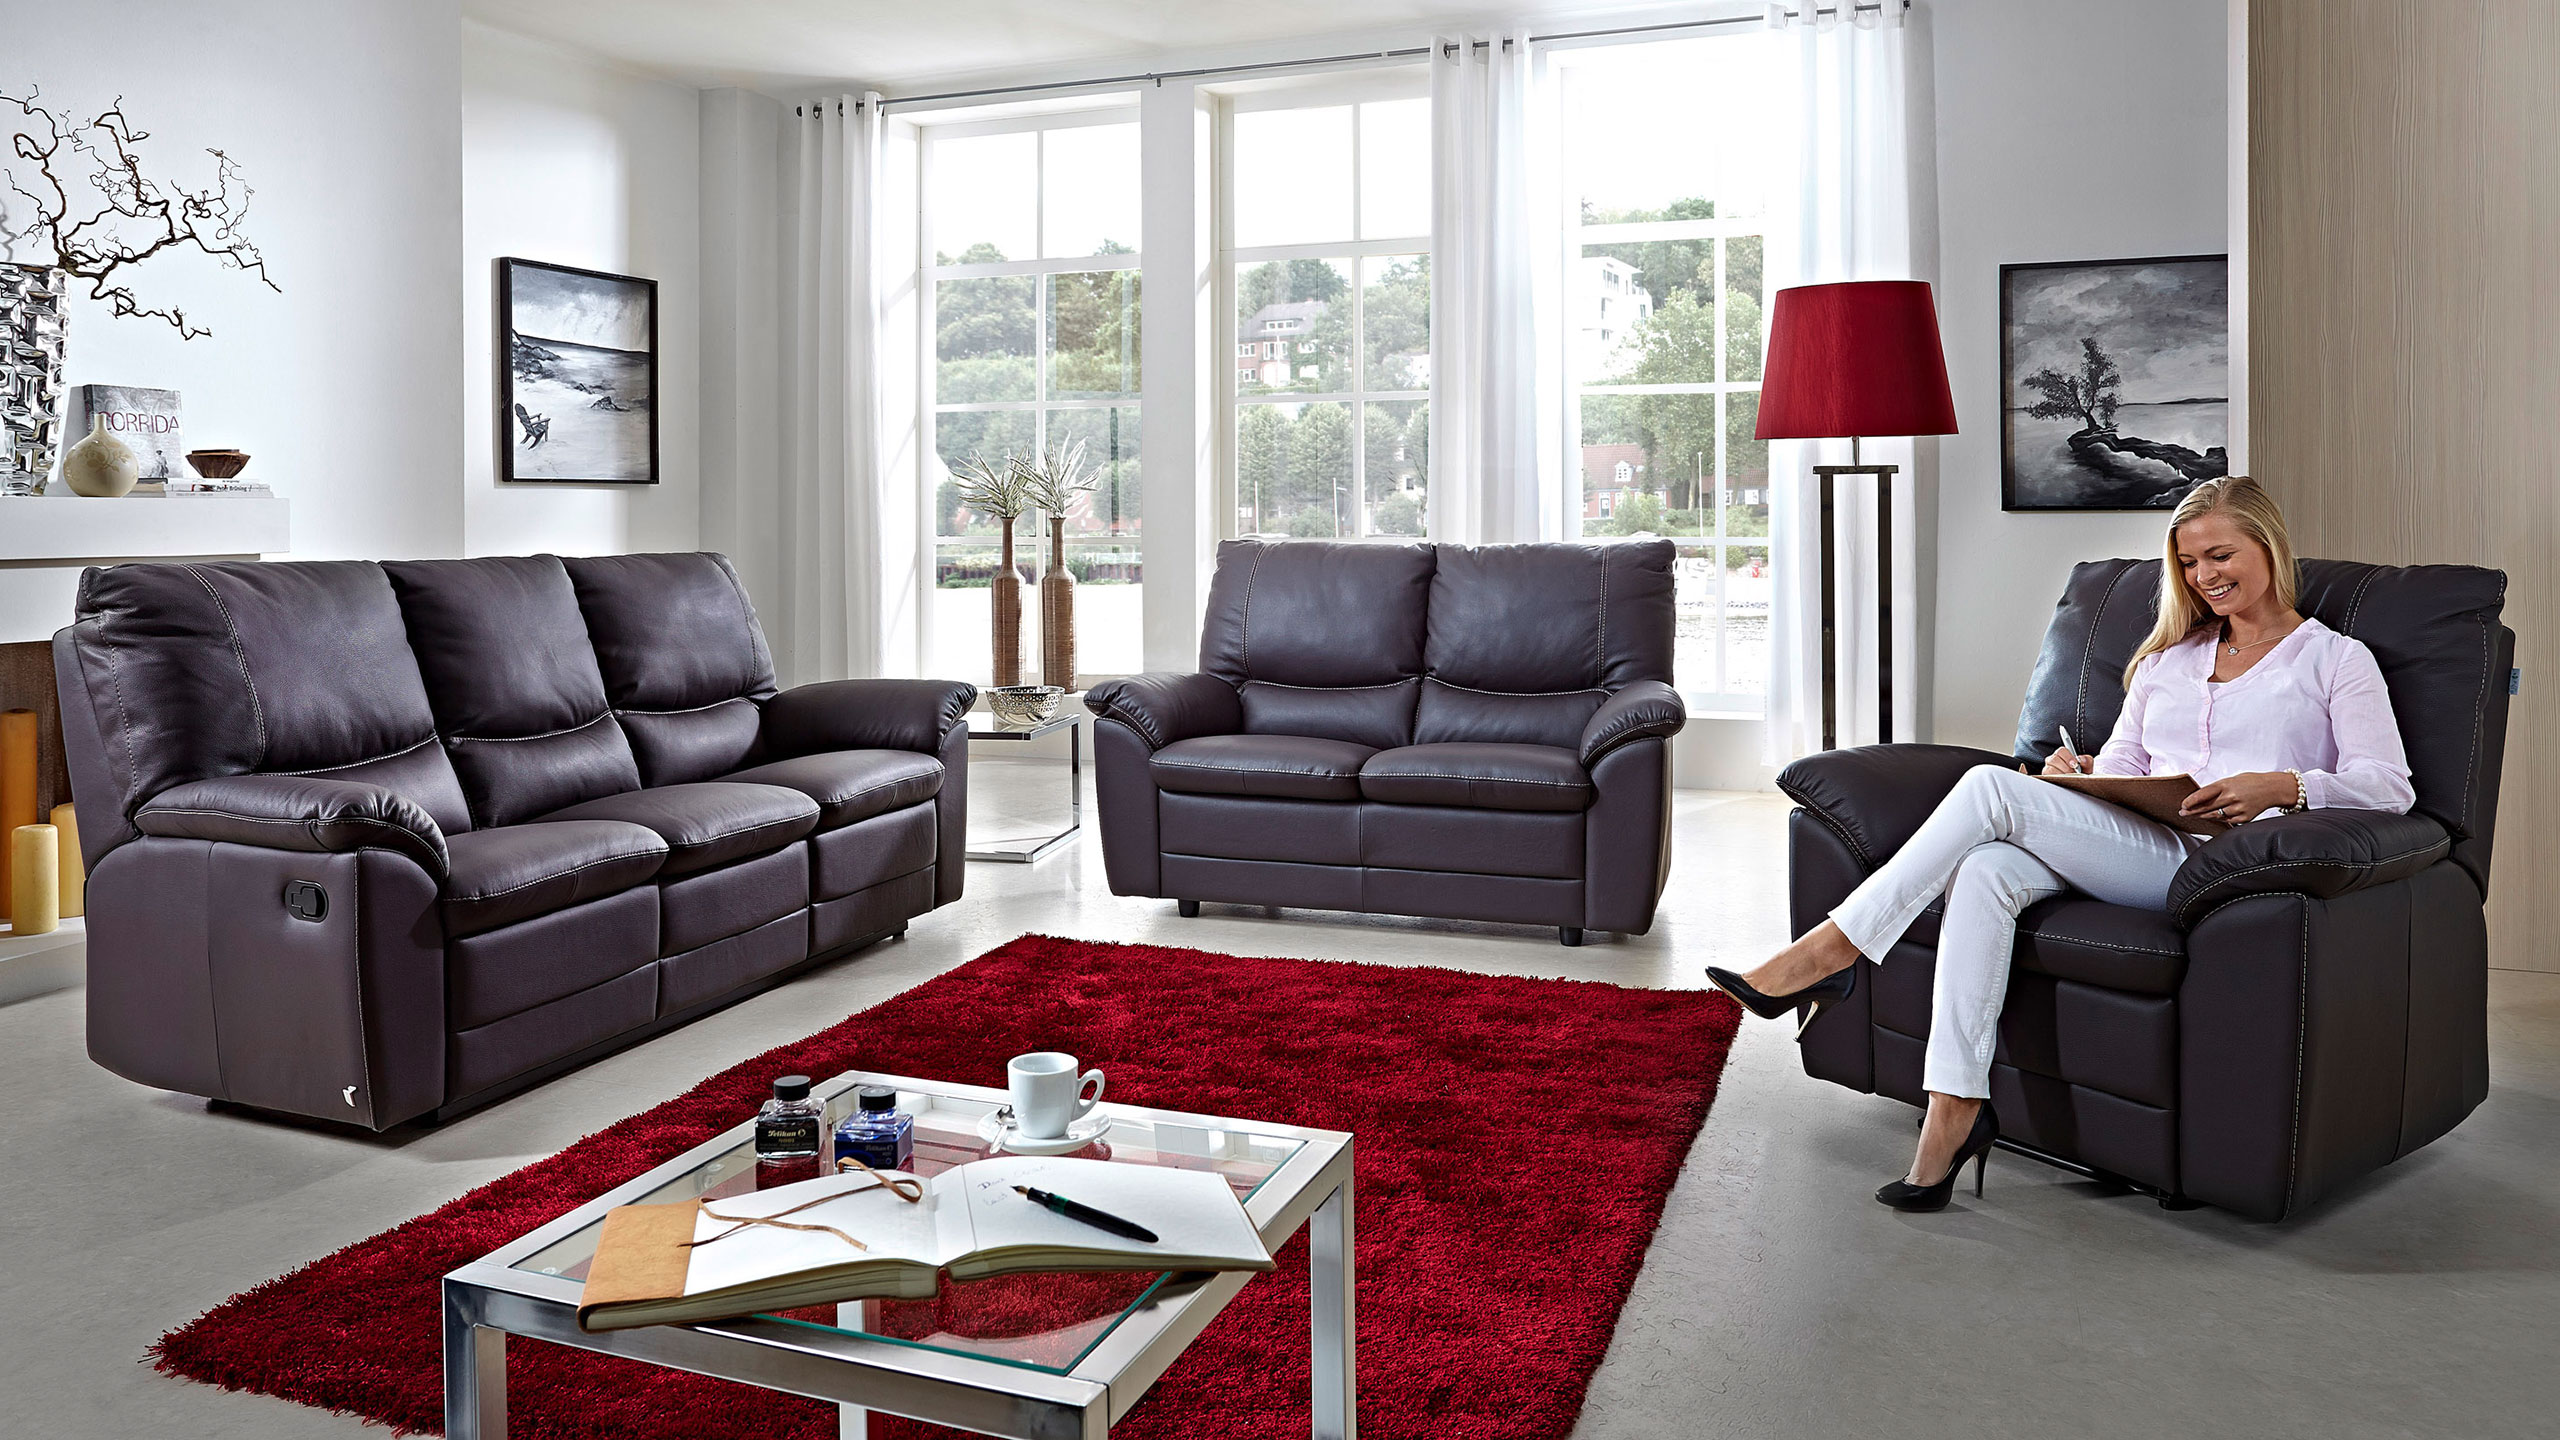 Marea Sofa Garnitur Leder Schwarz Sofa Garnituren Sortiment